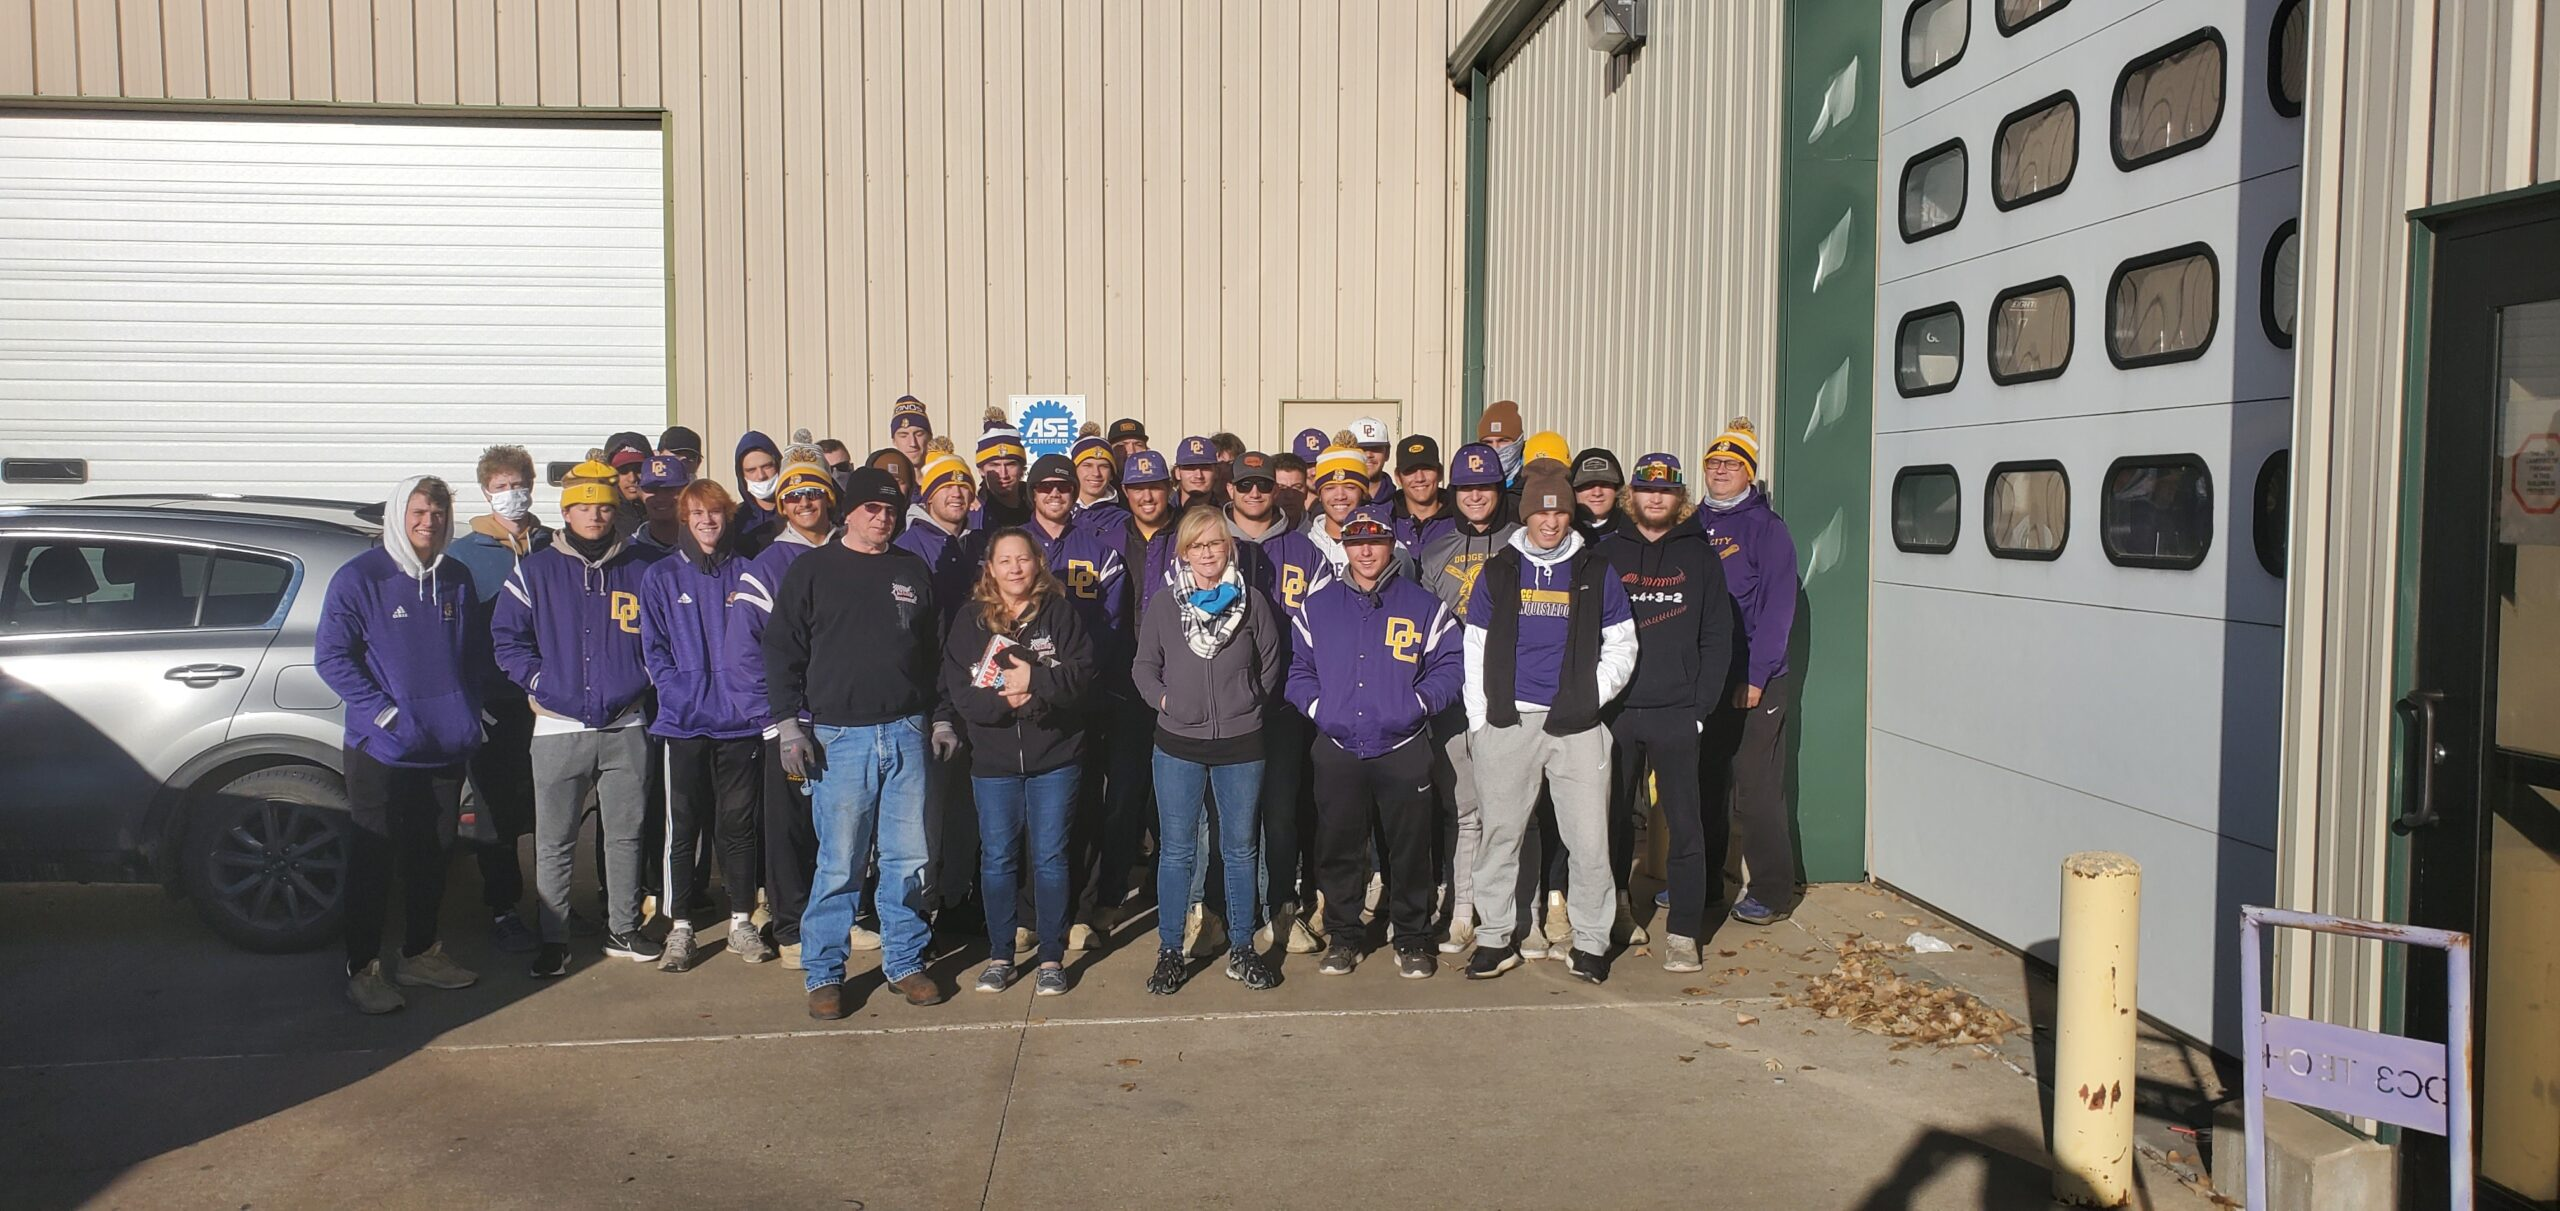 Charlotte Neuschafer, Director of Ford County RSVP and the Child and Adult Care Food Program, the DC3 Baseball team, and volunteers pose for a group photo